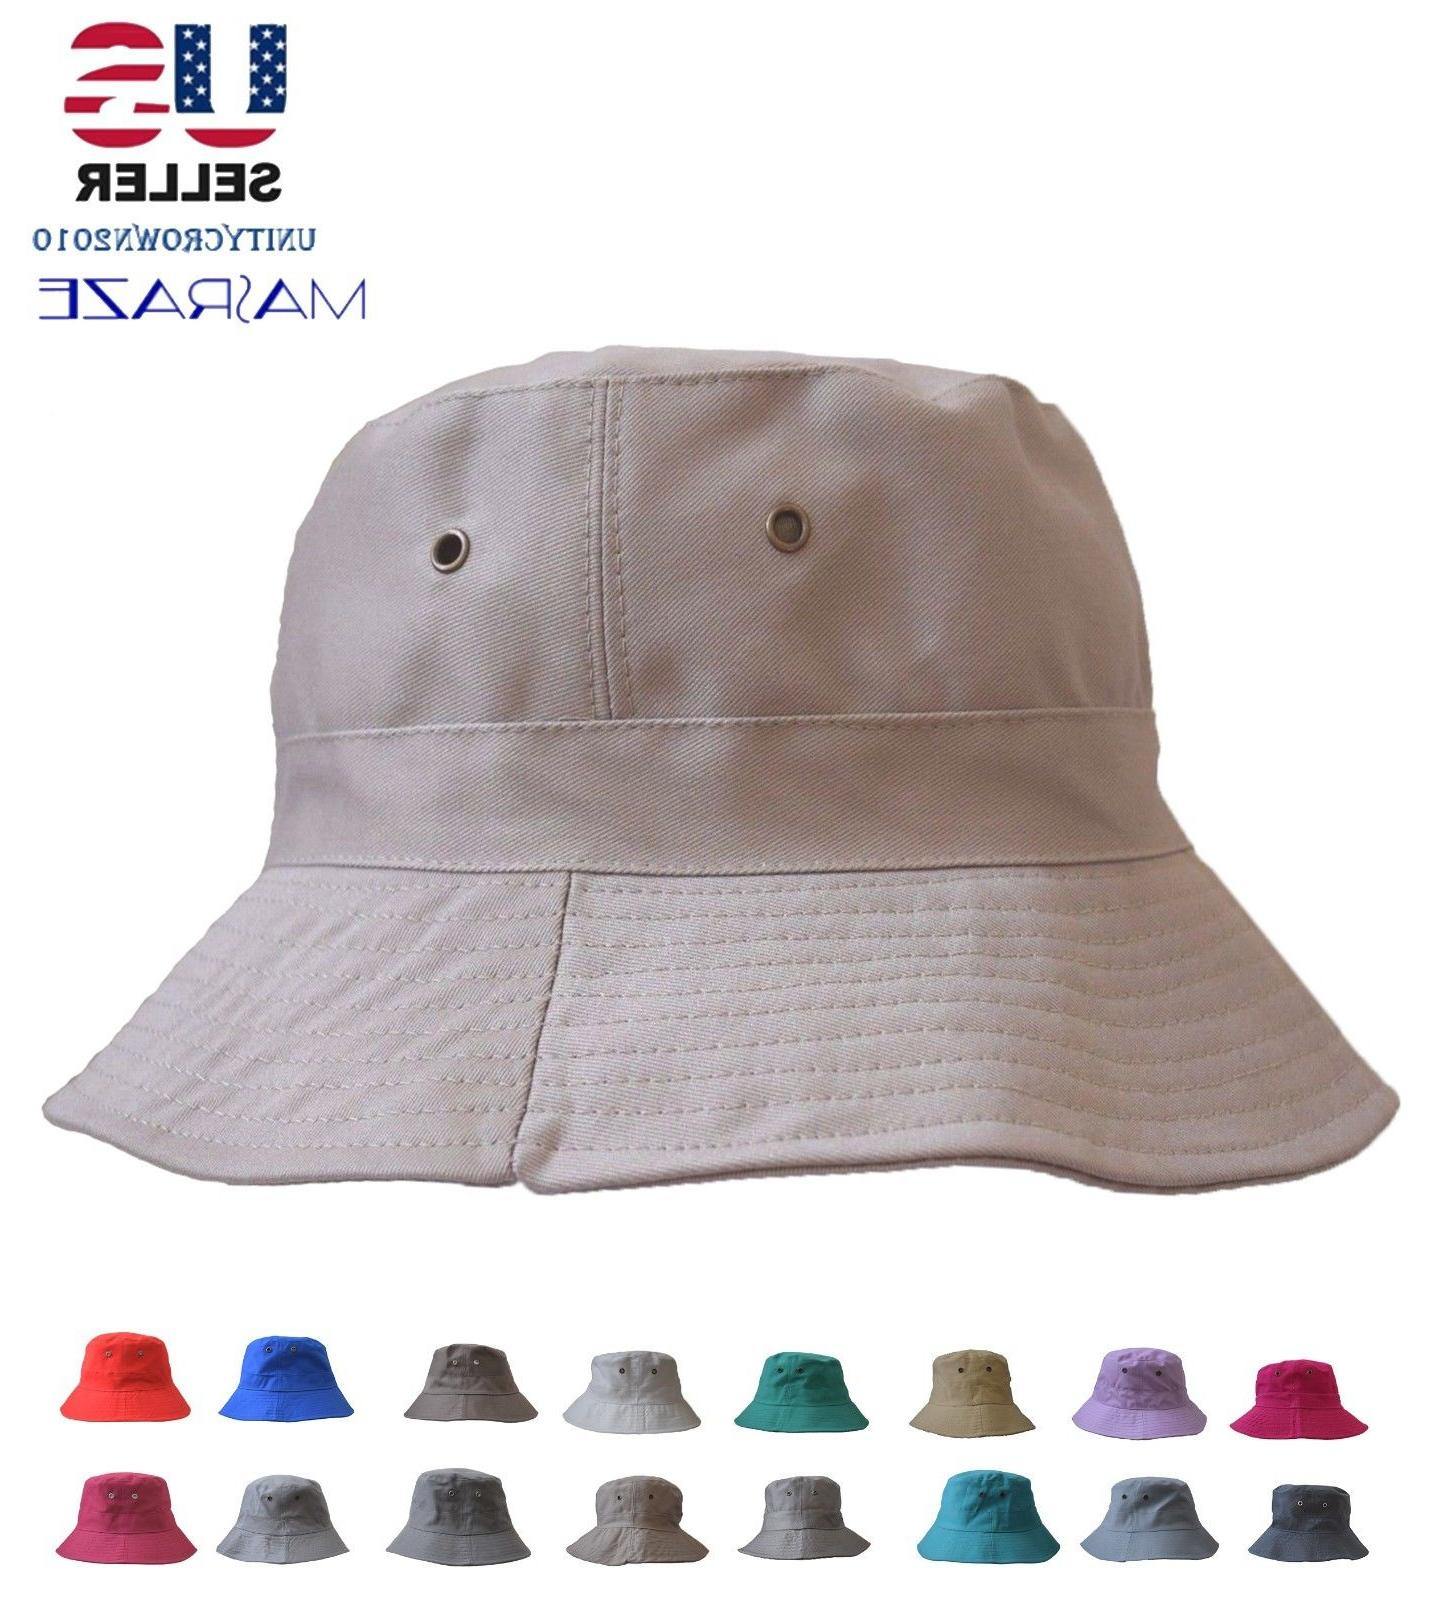 Boonie Bucket Hat Cap Cotton Fishing visor Sun Camping Masraze